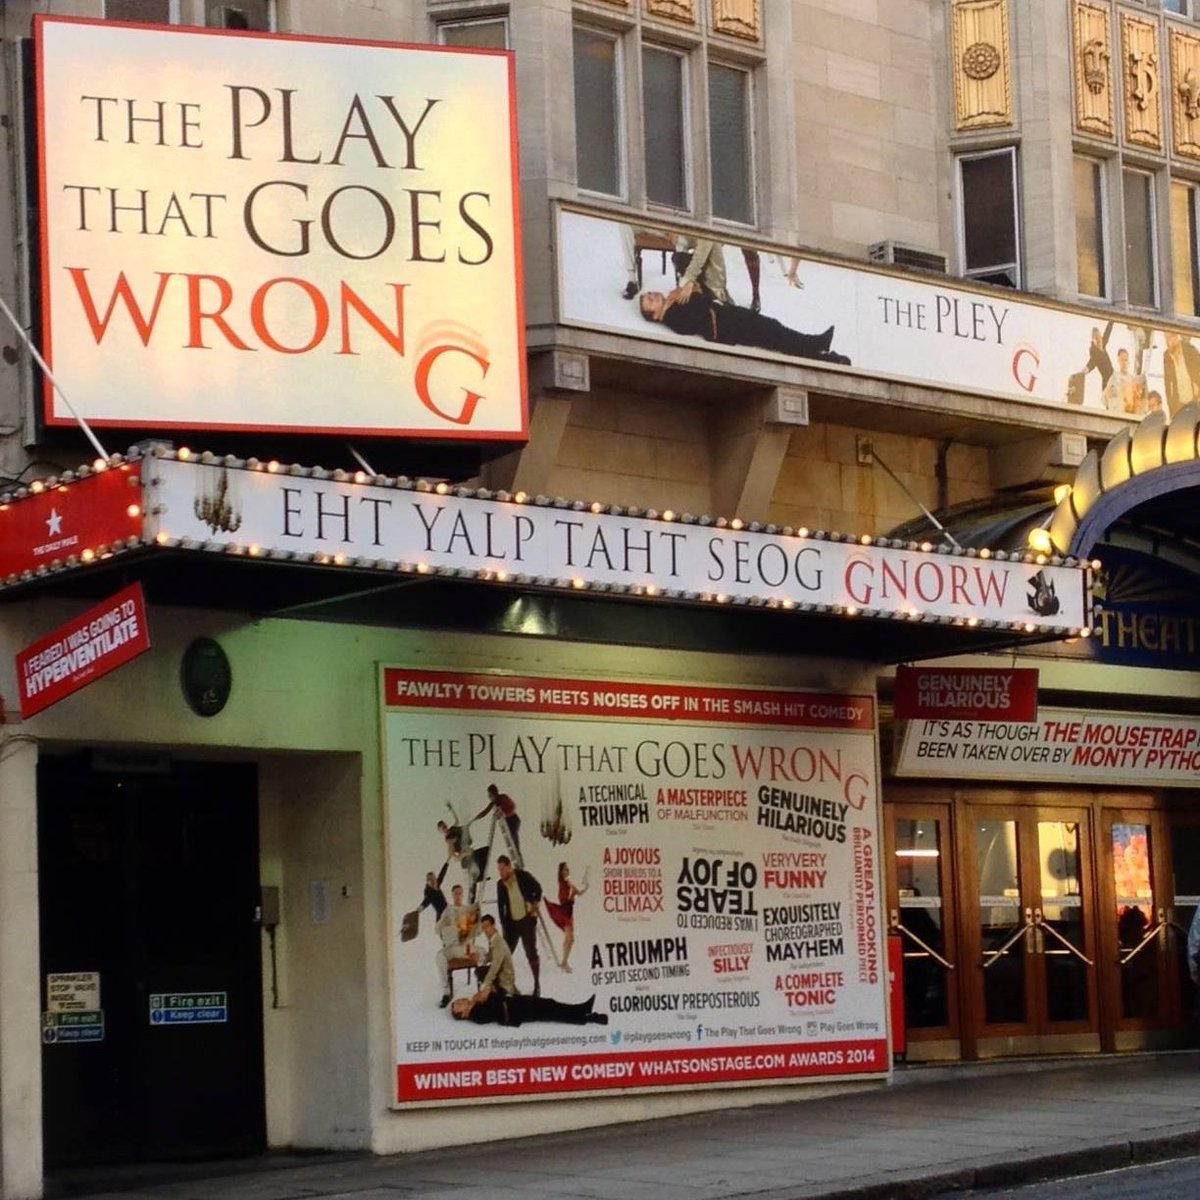 Happy #LoveTheatreDay to our friends across the industry - onstage and off, in the venues and in the audience 🎭  Thanks to everyone who makes theatre possible 💖 It really does take a lot of things going right, to make sure it all #GoesWrong on the night in our shows!